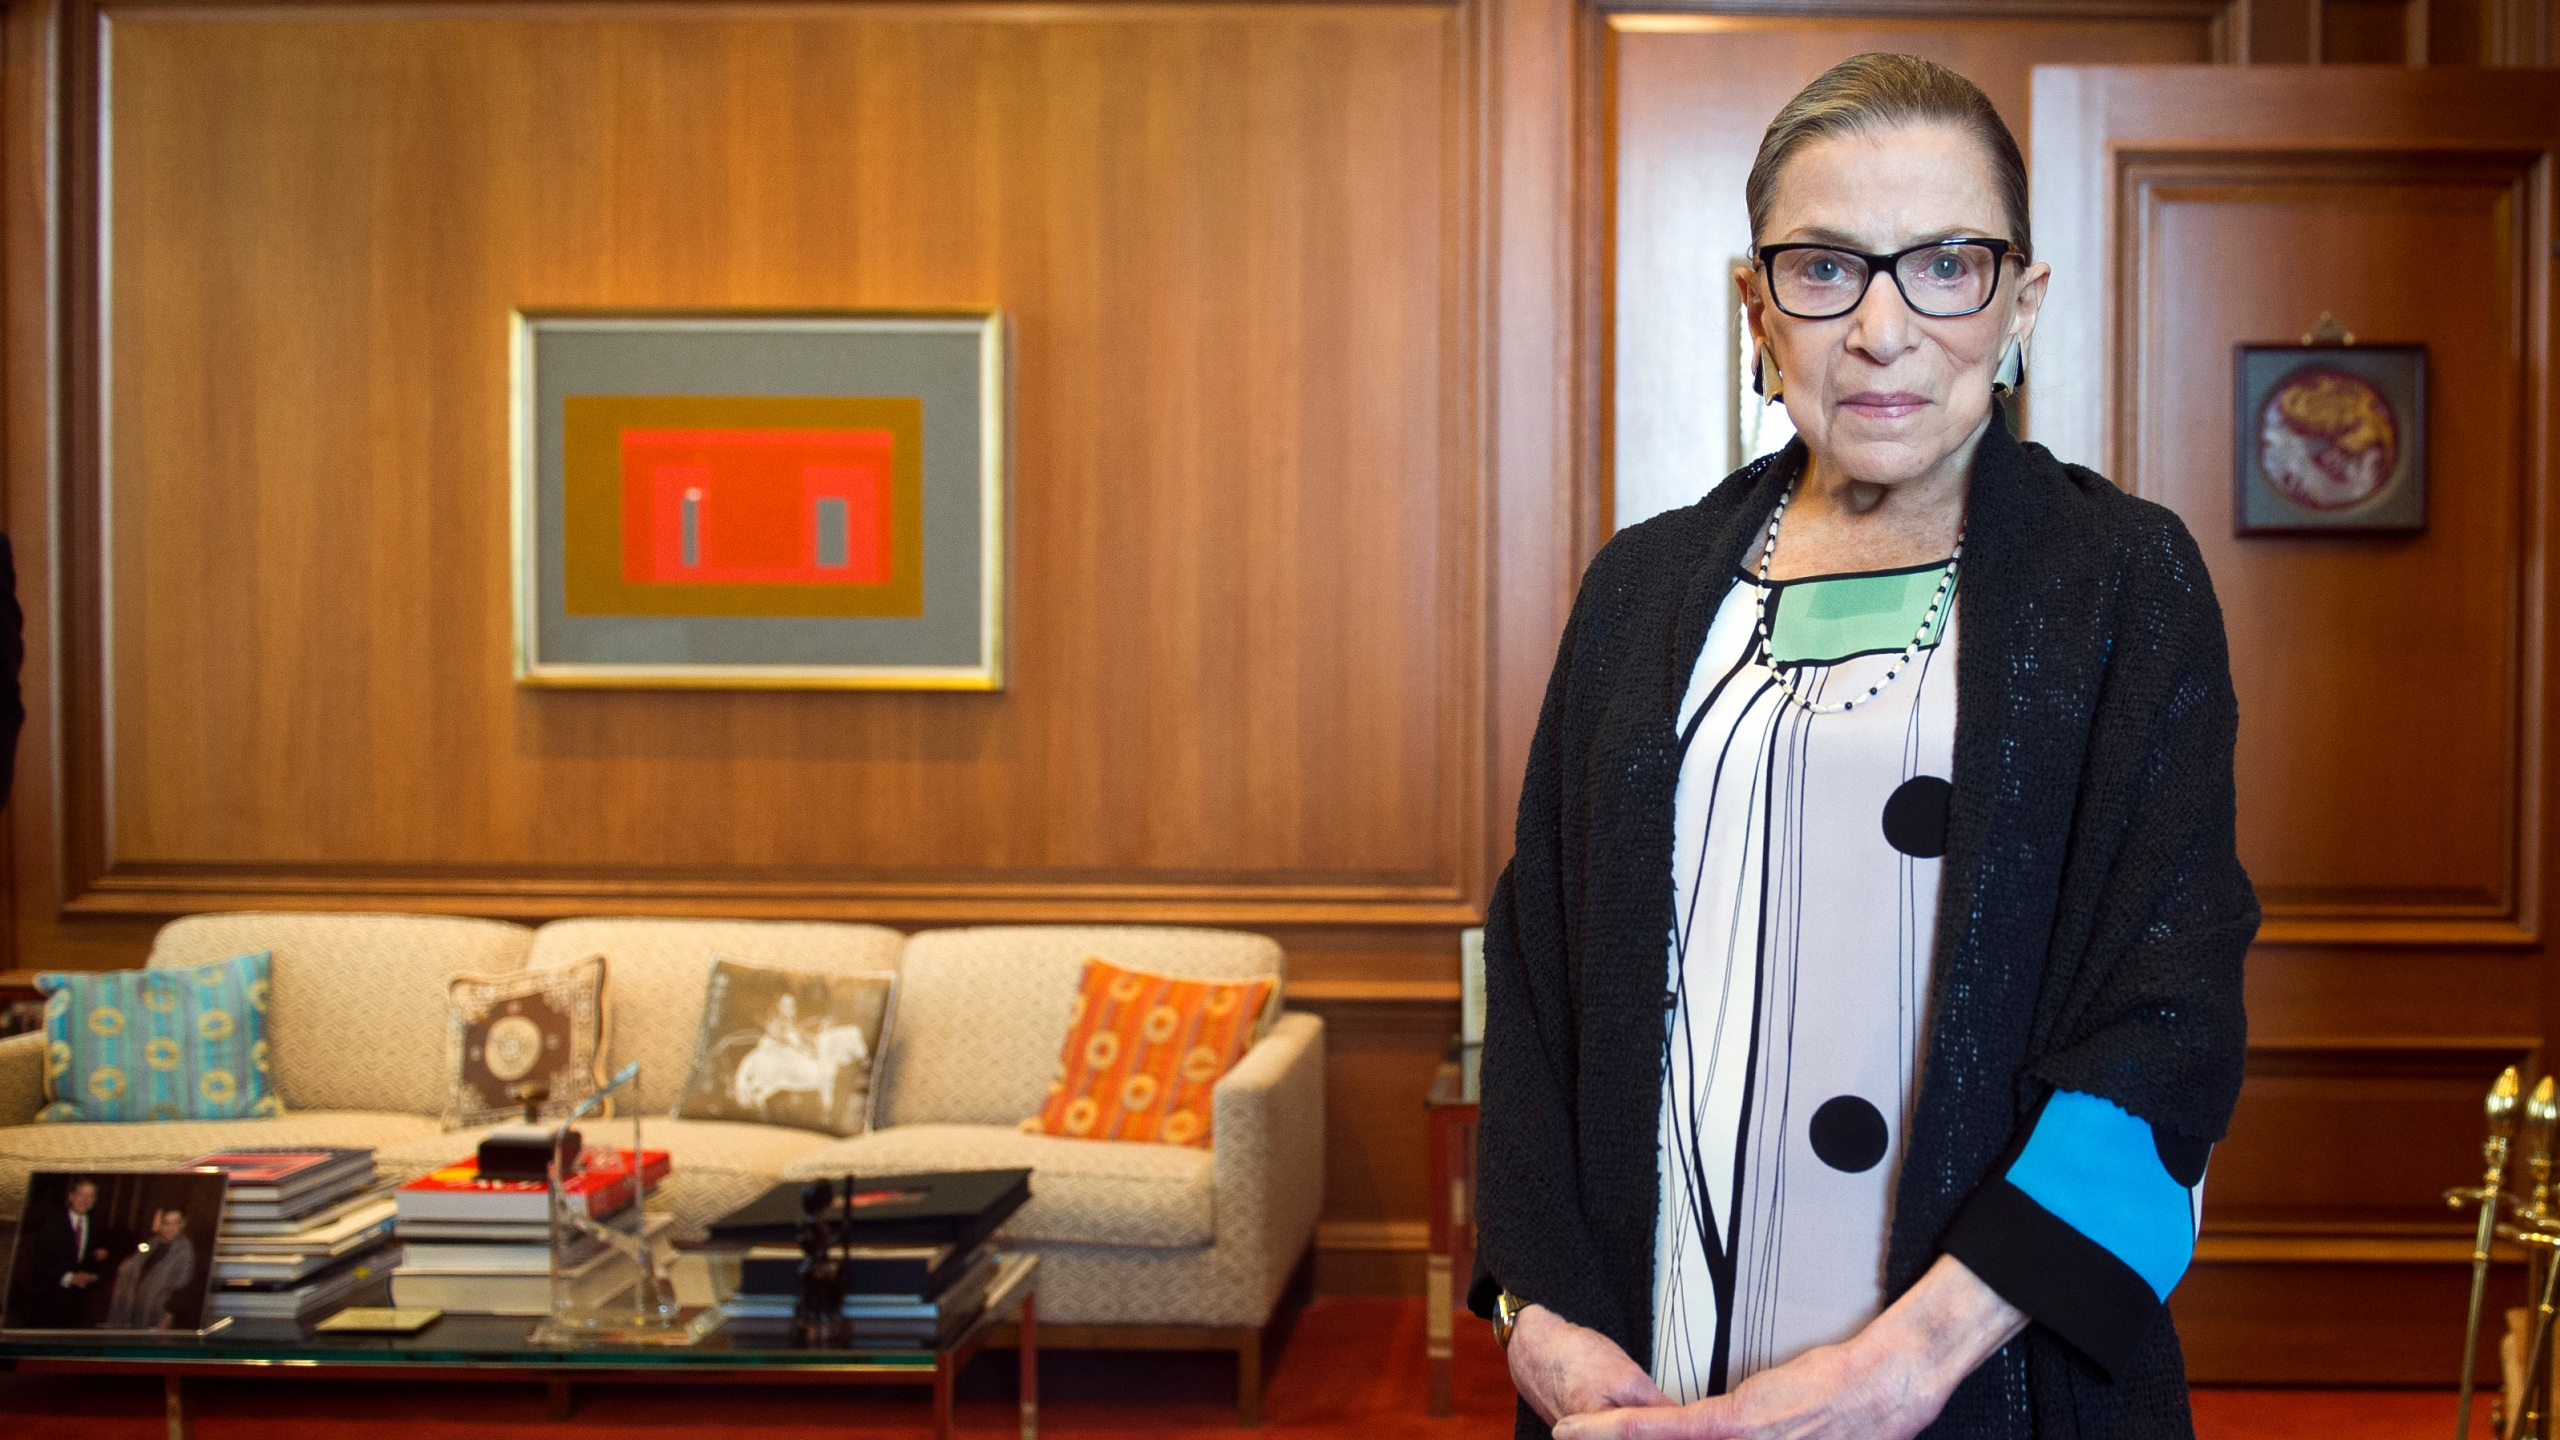 Supreme_Court_Justice_Ginsburg_Staying_Put_19478-159532.jpg25349953